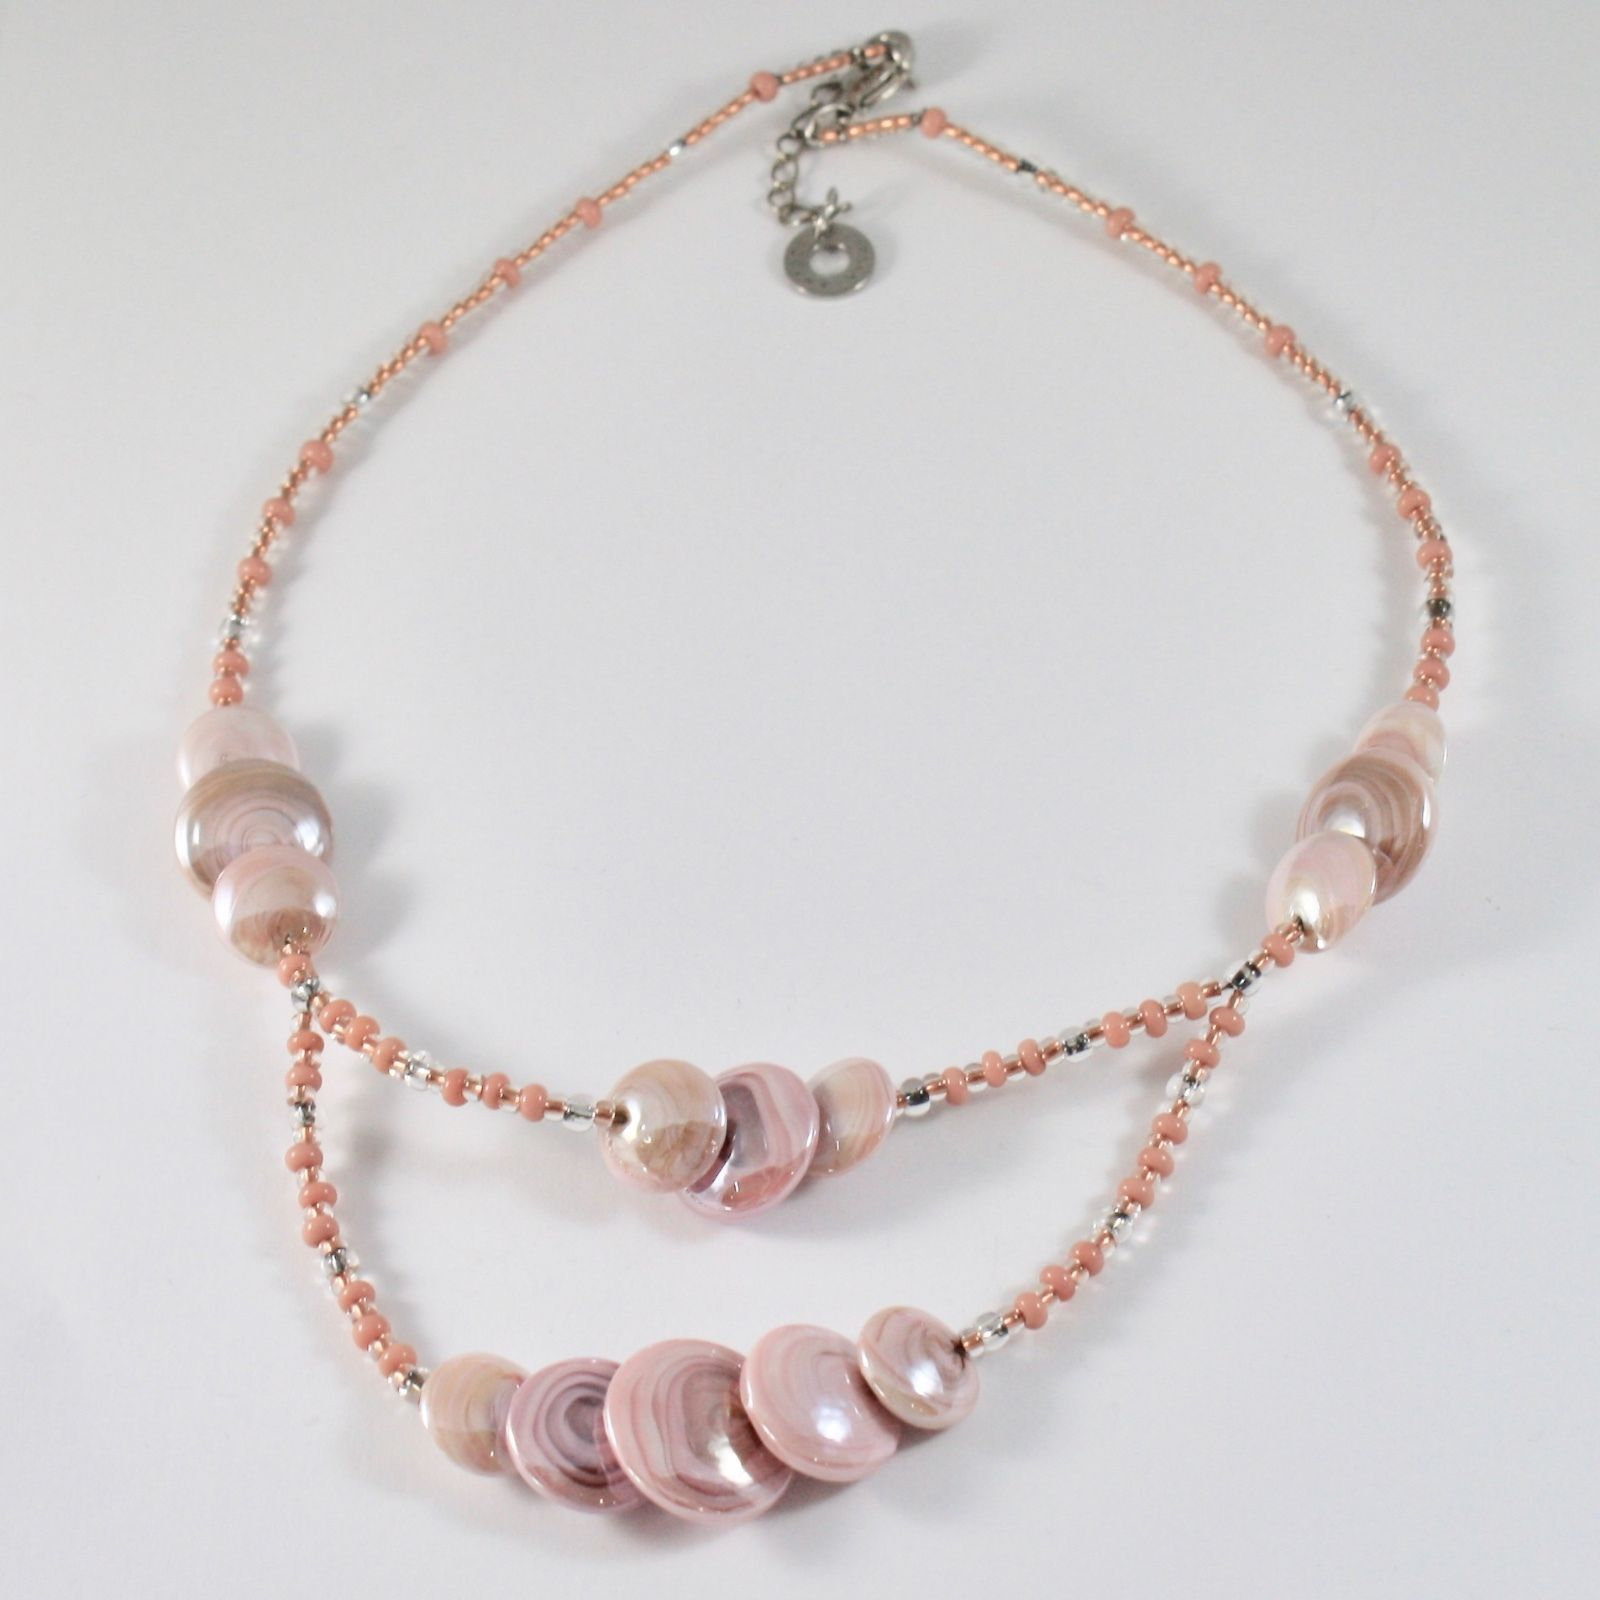 NECKLACE ANTICA MURRINA VENEZIA WITH MURANO GLASS DISC PINK C960A03